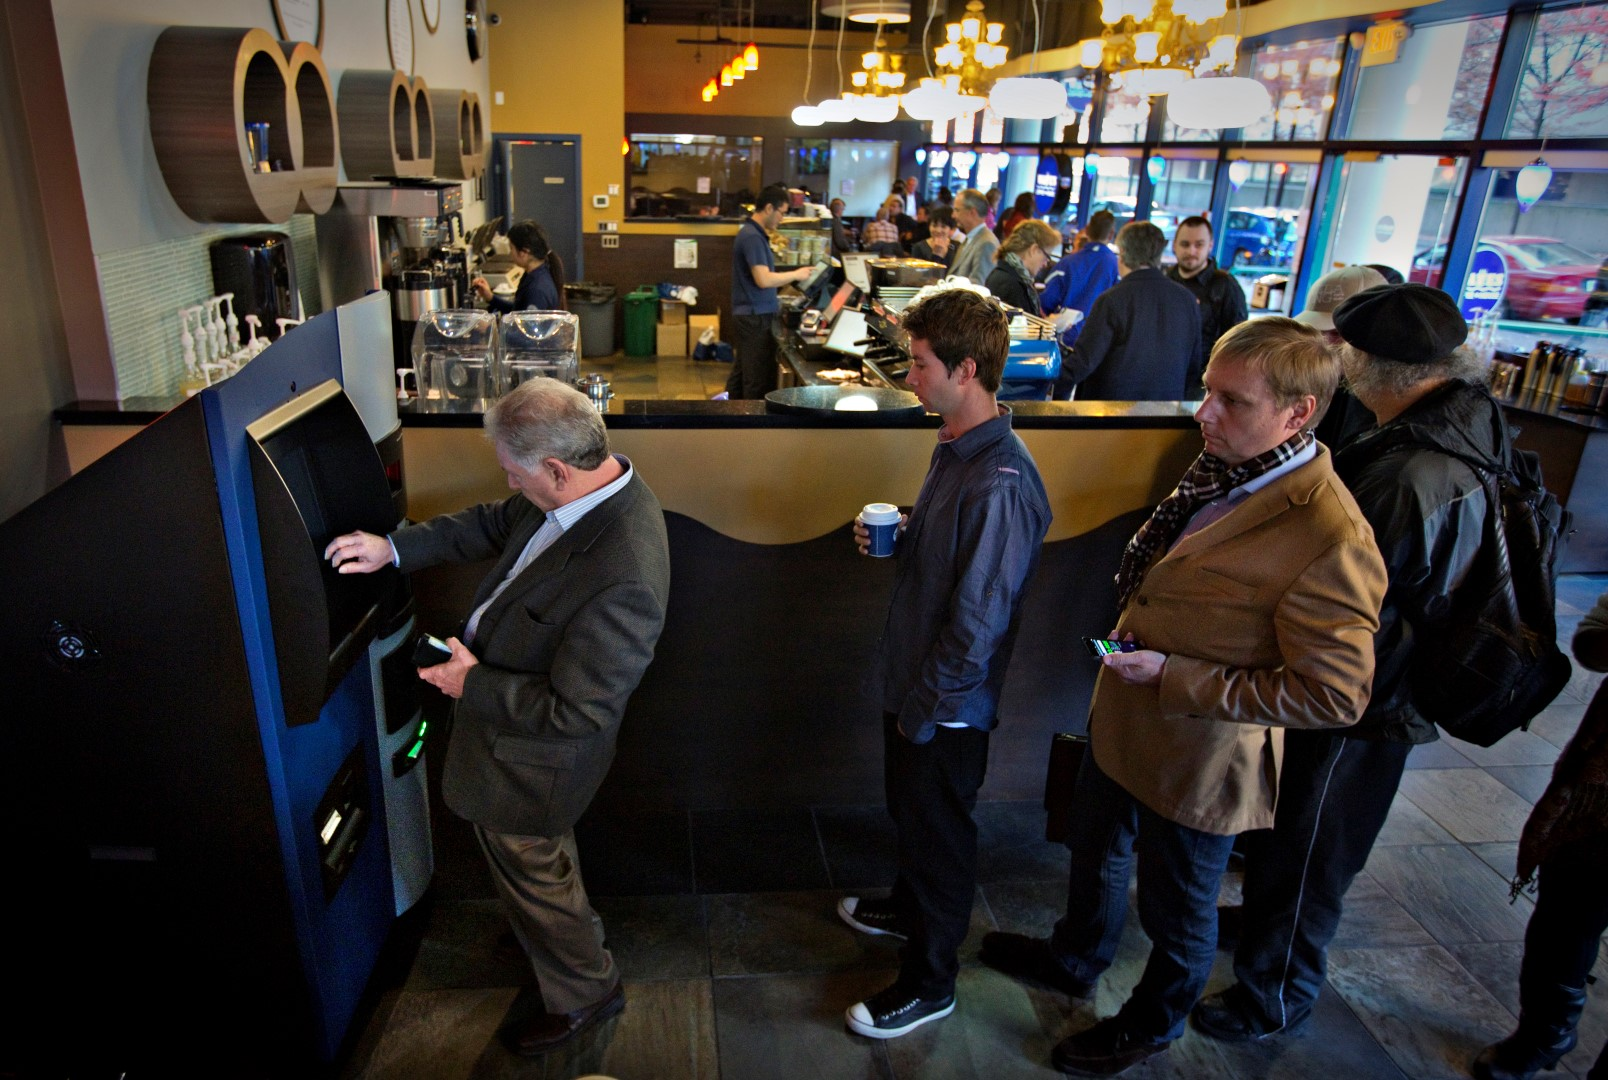 Customers line-up to use the world's first ever permanent bitcoin ATM unveiled at a coffee shop in Vancouver, British Columbia October 29, 2013. The kiosk, built by Las Vegas RoboCoin and operated by local dealer Bitcoiniacs, will allow users to withdraw their bit coins in the form of Canadian dollars or deposit cash to buy more bitcoins. REUTERS/Andy Clark (CANADA - Tags: BUSINESS SOCIETY SCIENCE TECHNOLOGY) - GM1E9AU08KU01